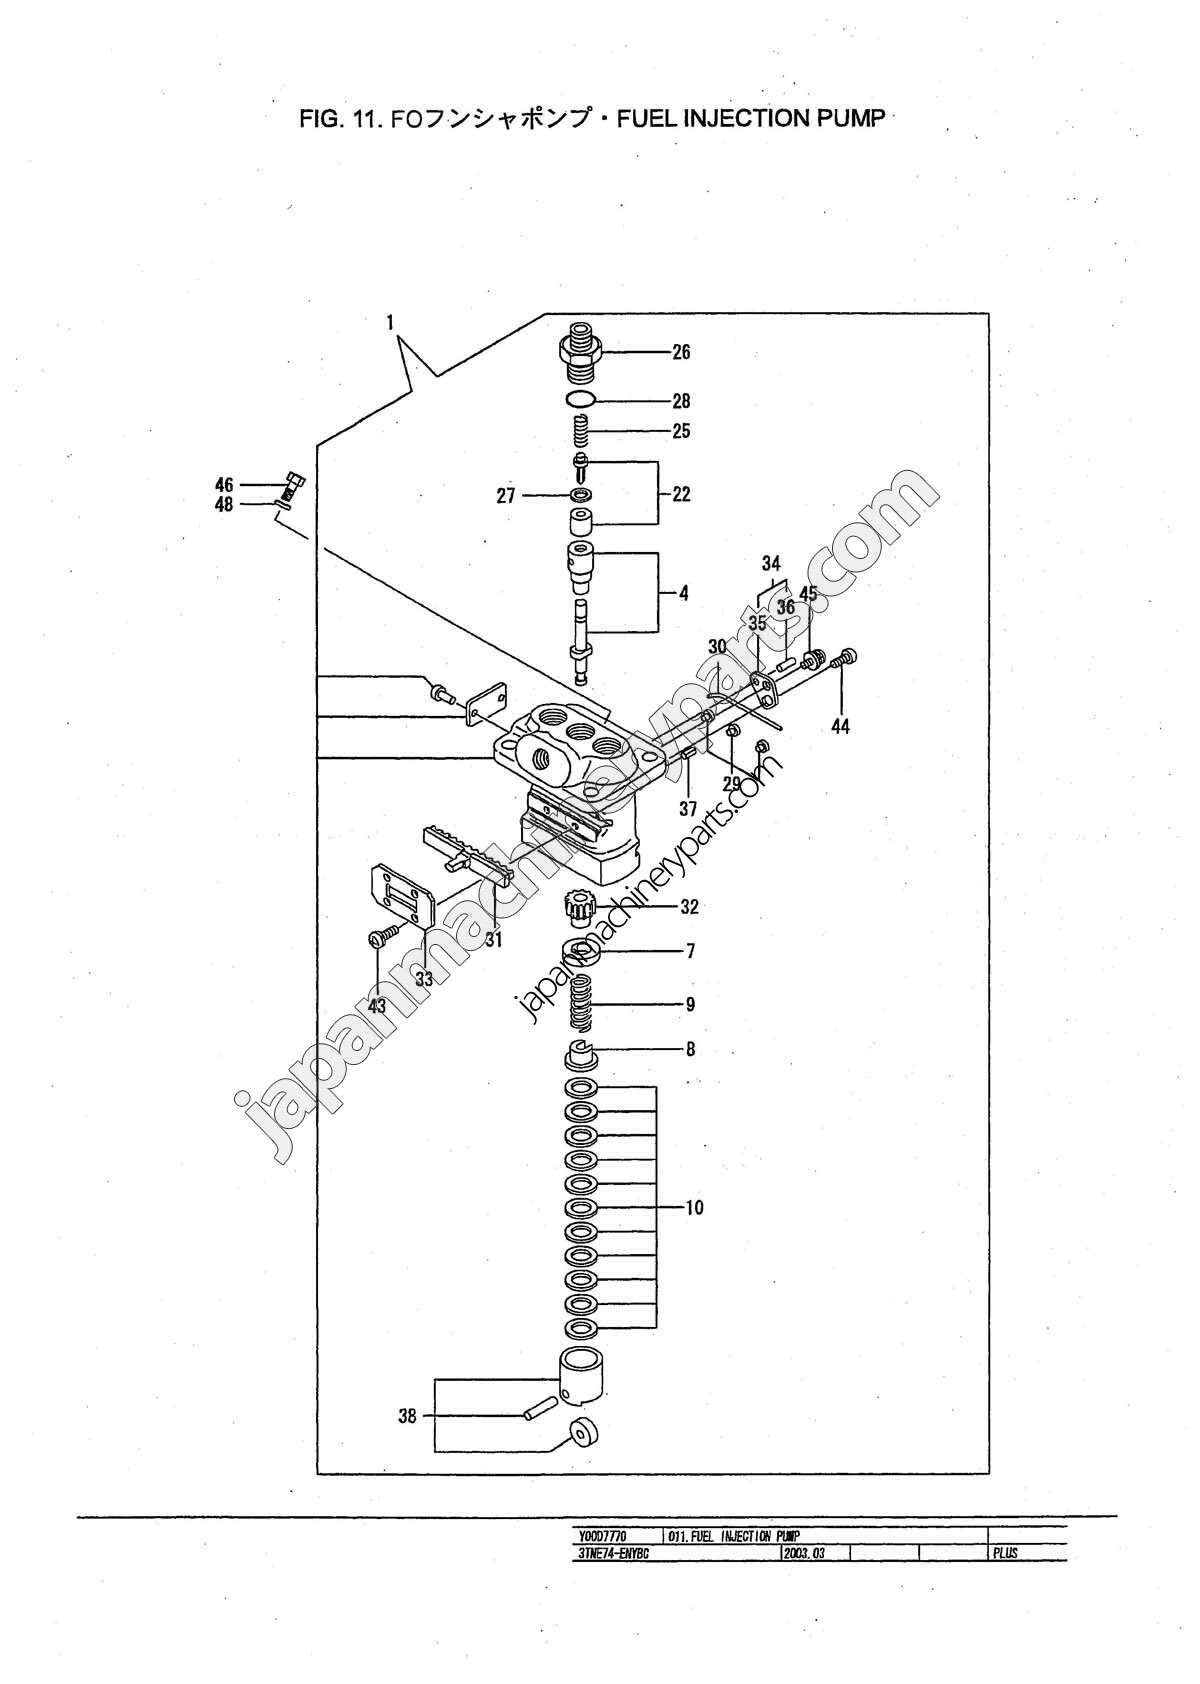 Kubota Engine Injection Pump Diagrams